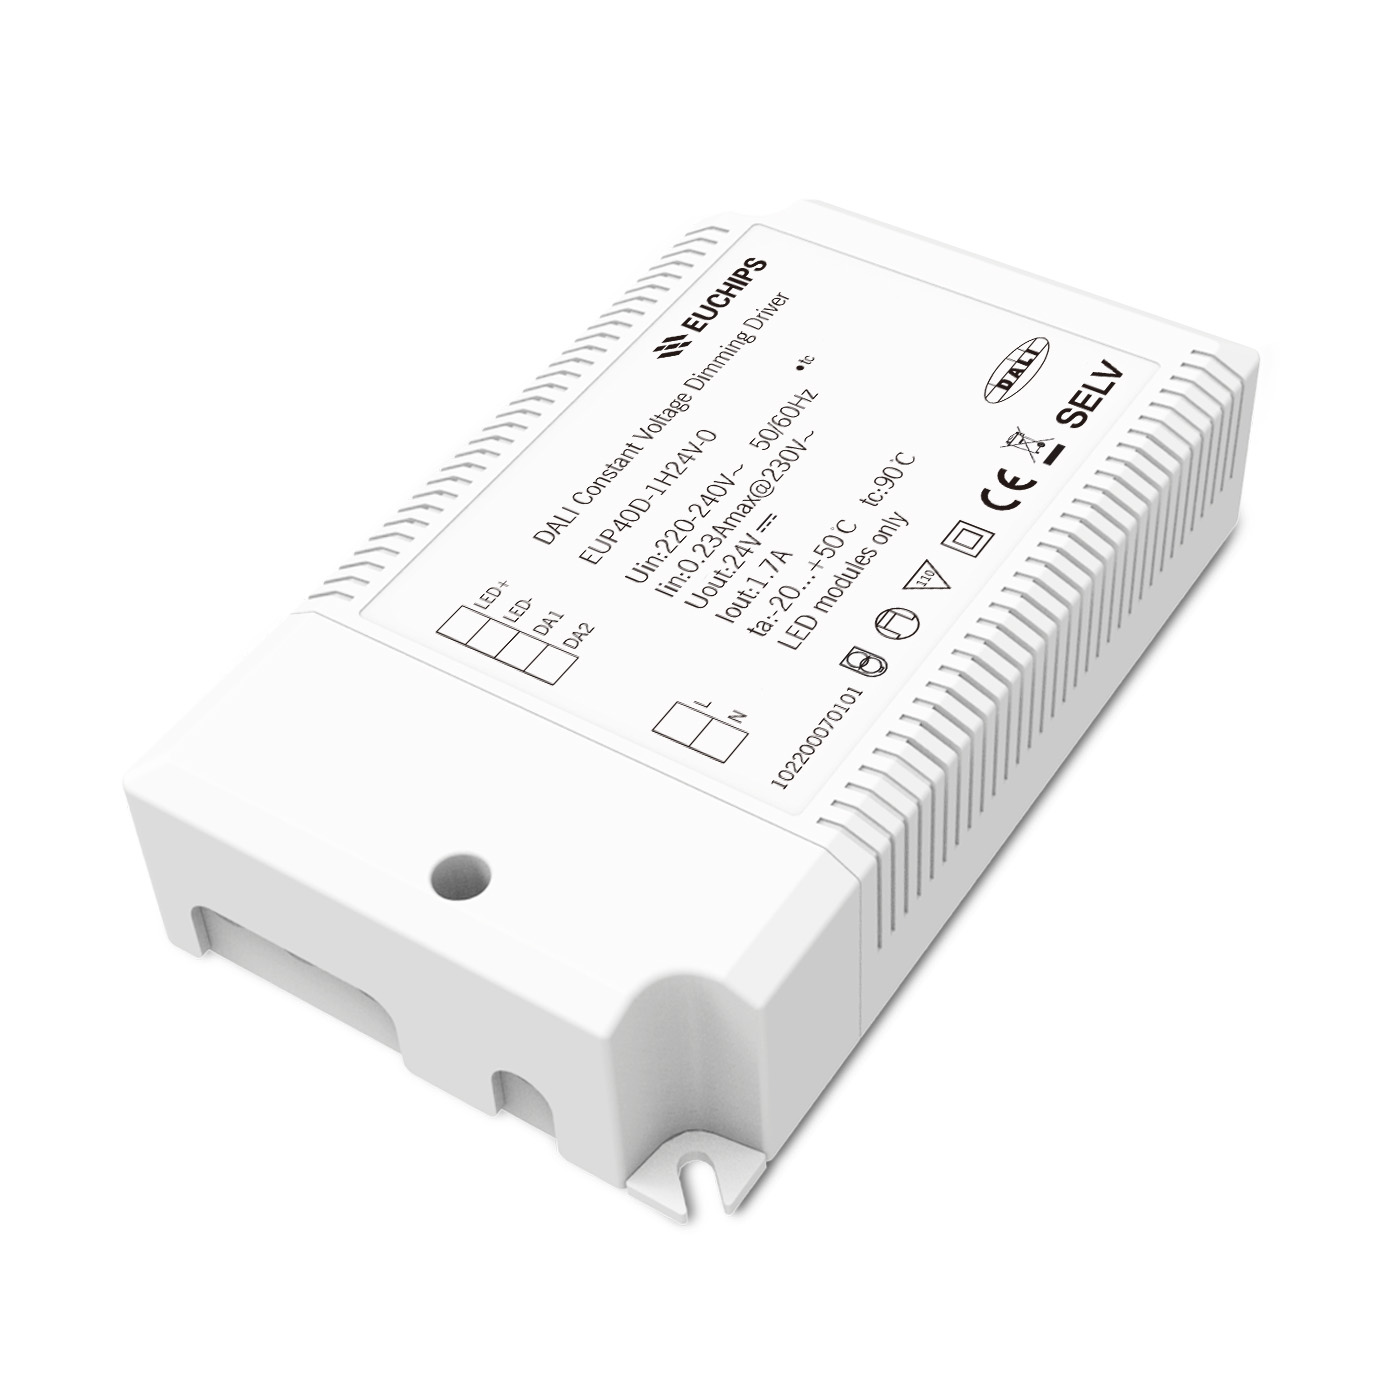 40W 24VDC DALI Constant Voltage LED Driver EUP40D-1H24V-0 Featured Image